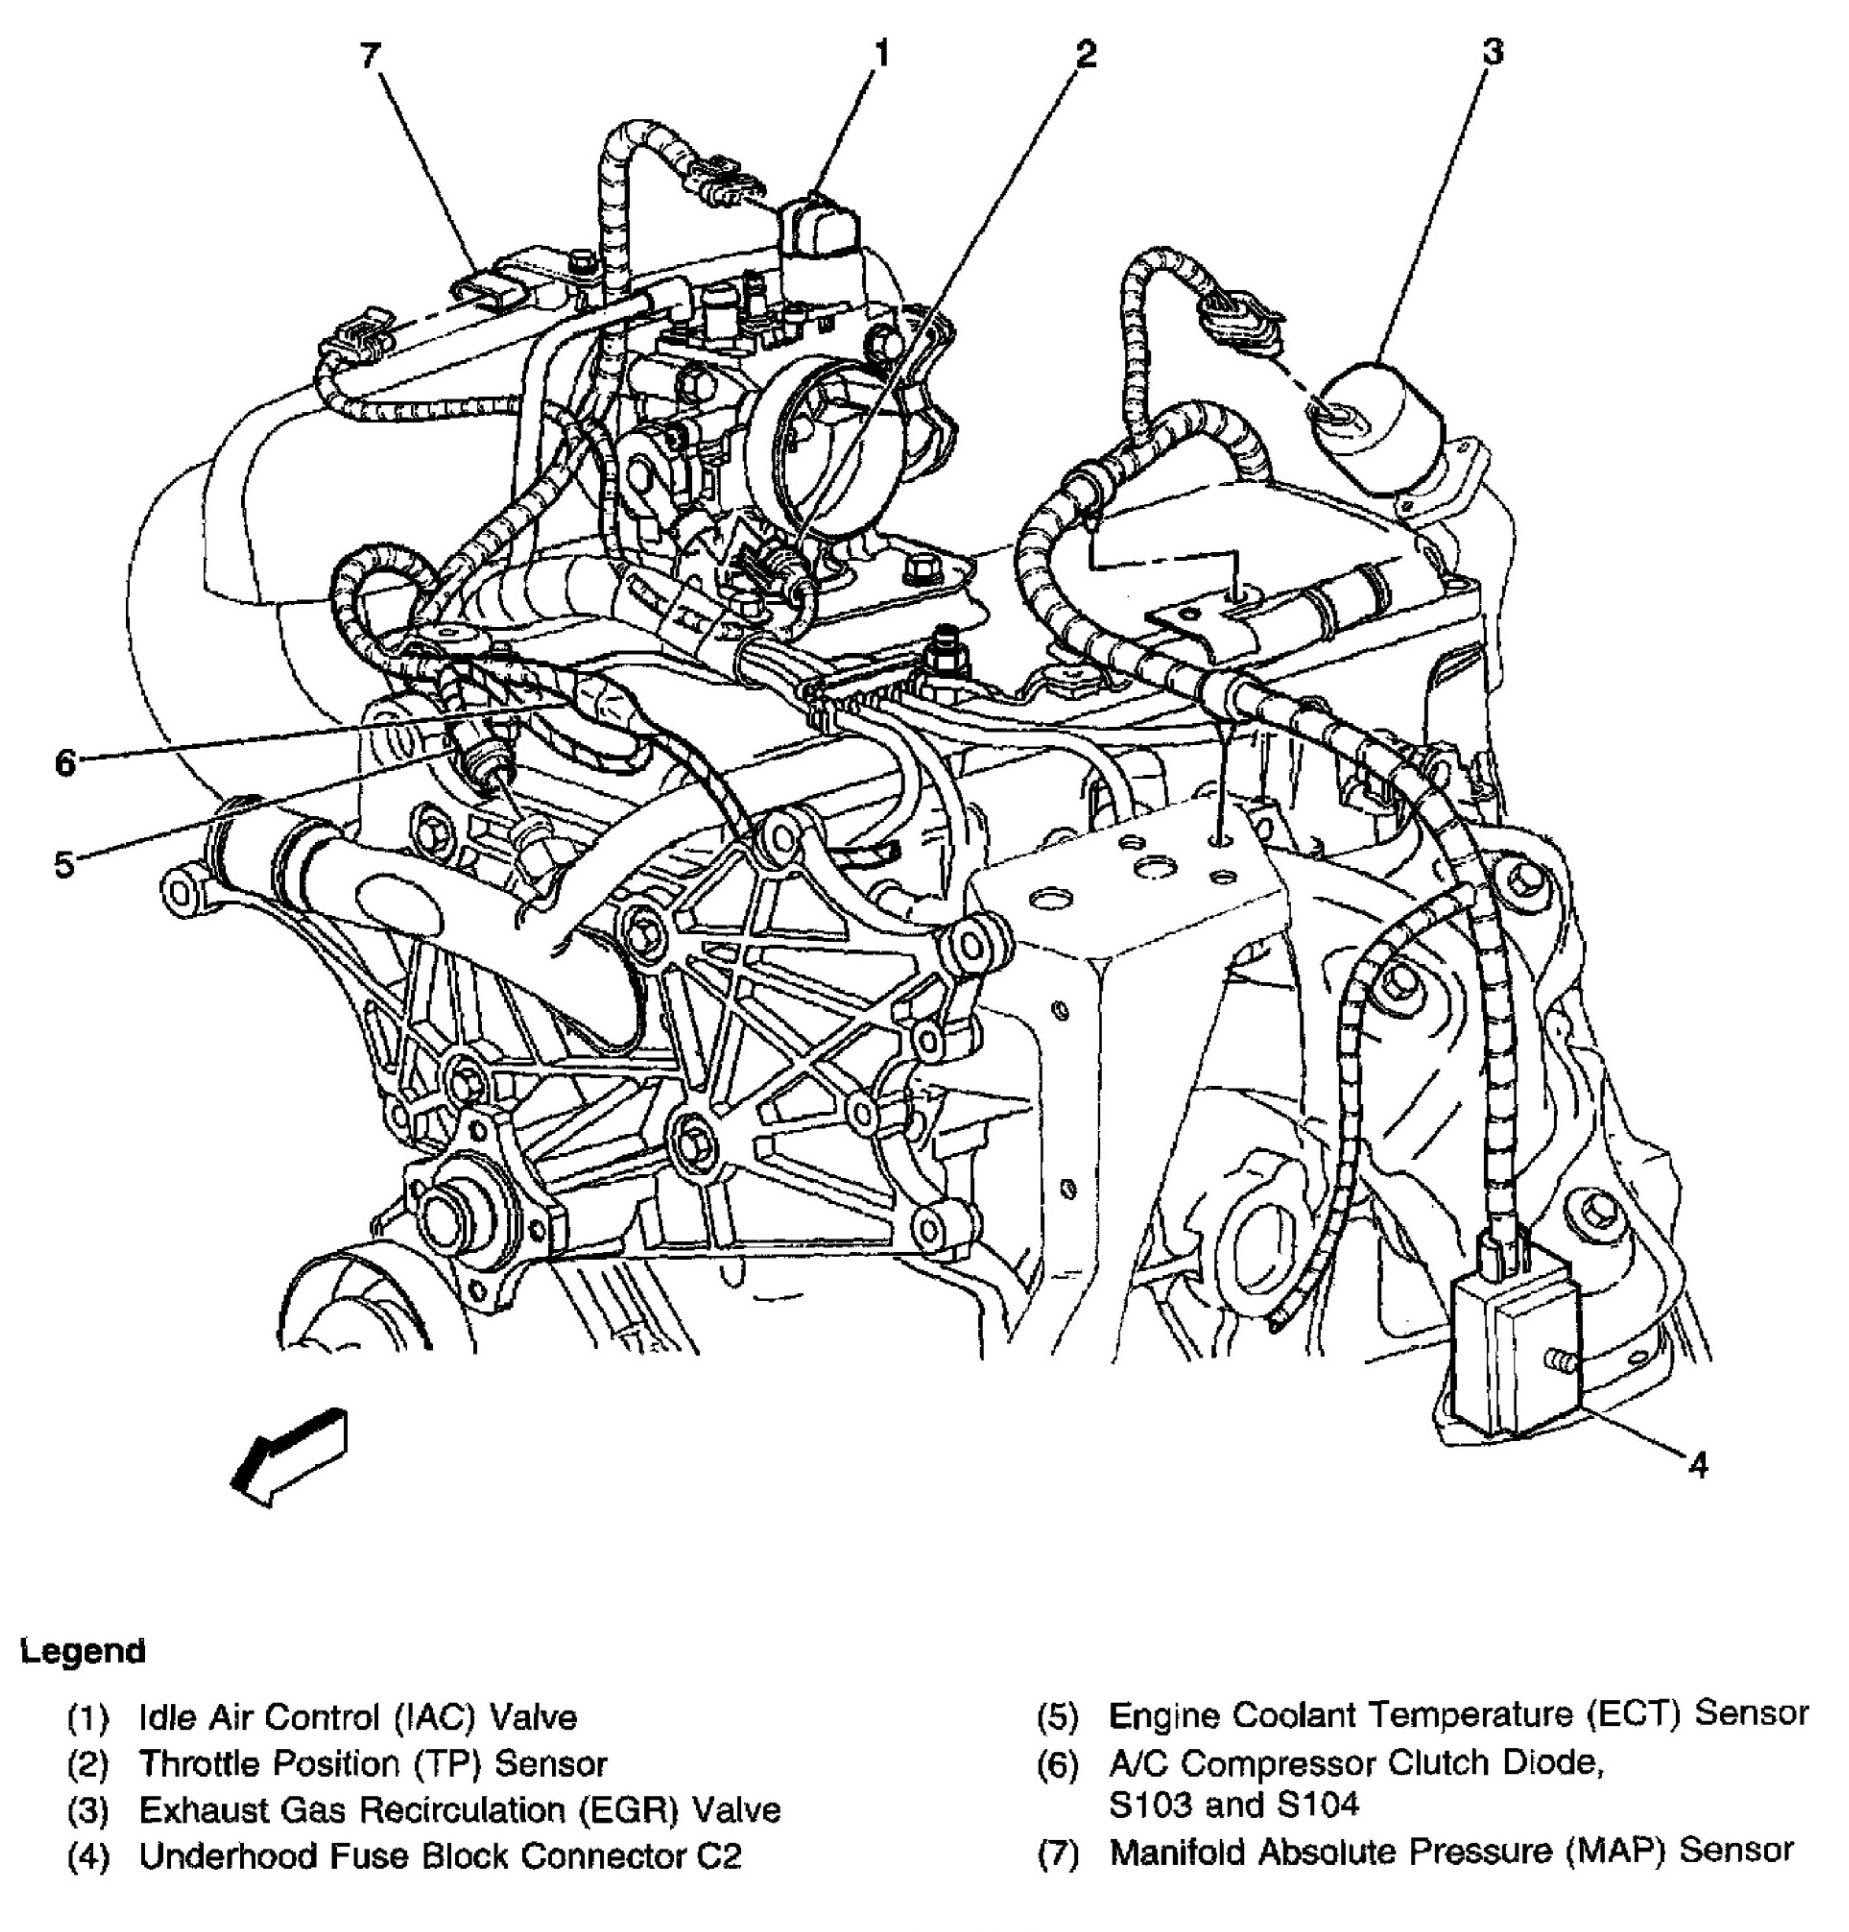 Wiring Diagram 1991 S10 Engine Diagram Full Hd Version Seabassrecipes Kinggo Fr